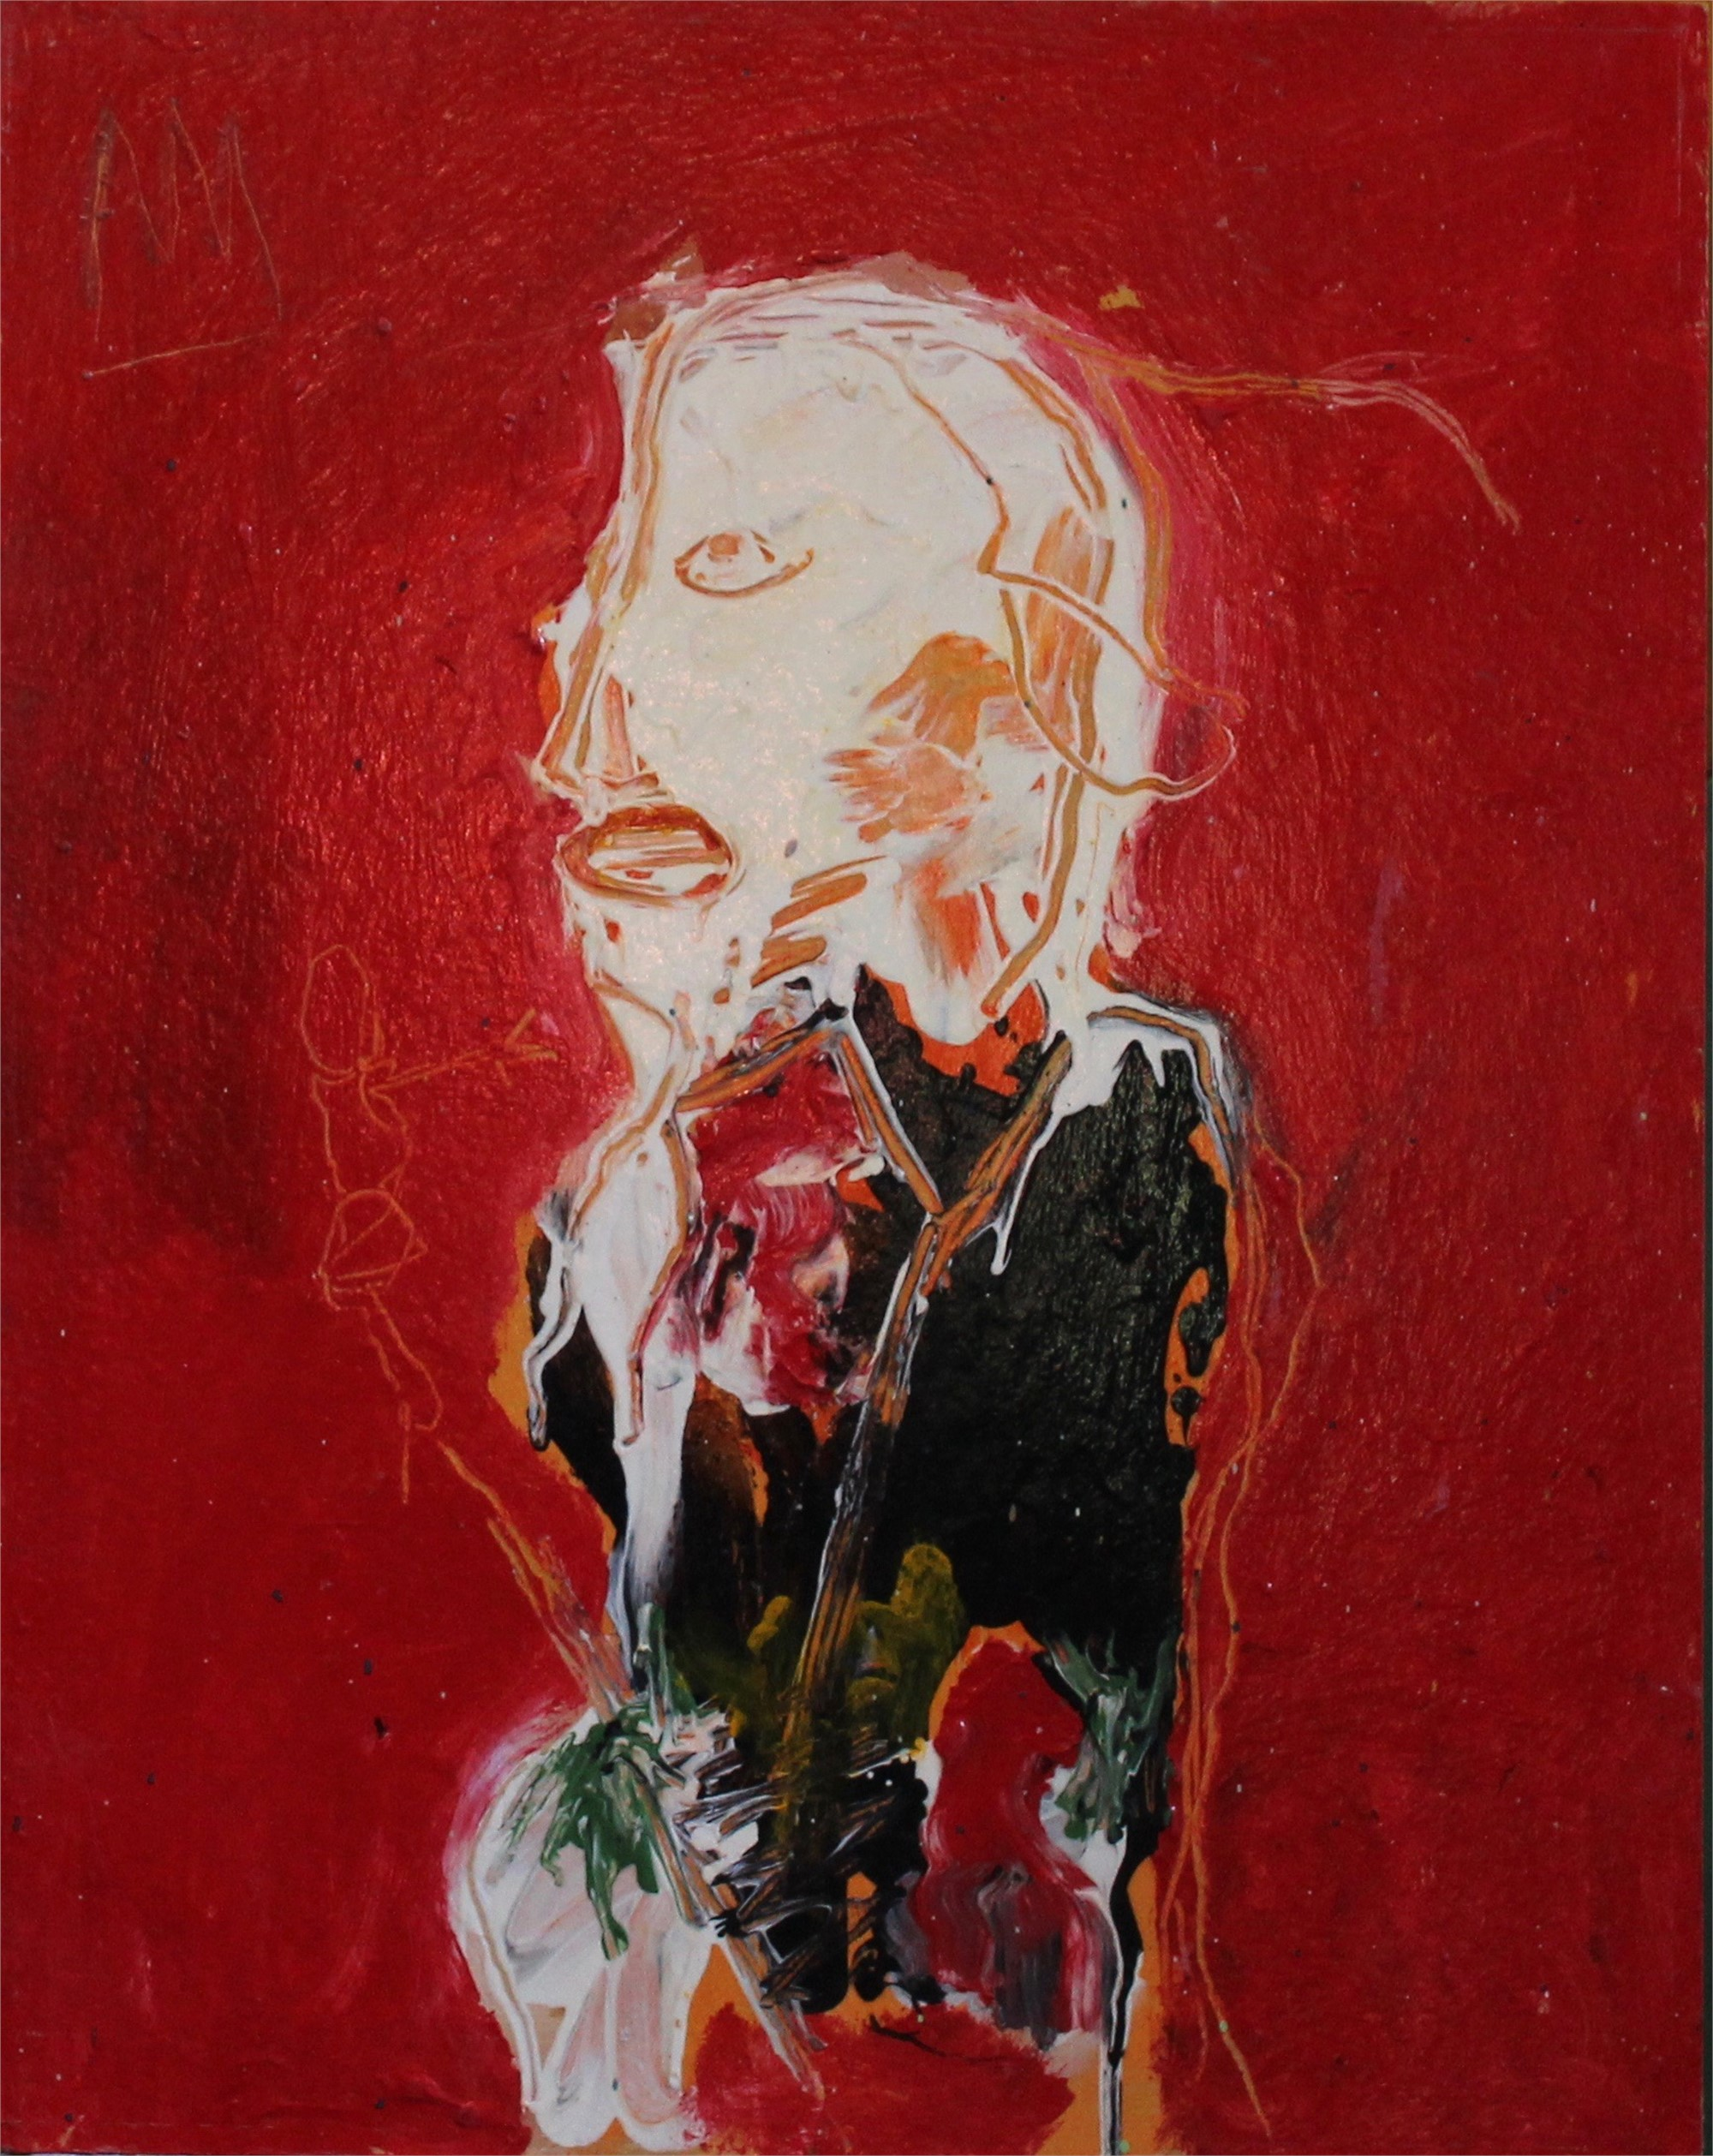 Art Critic with Red Ascot by Michael Snodgrass